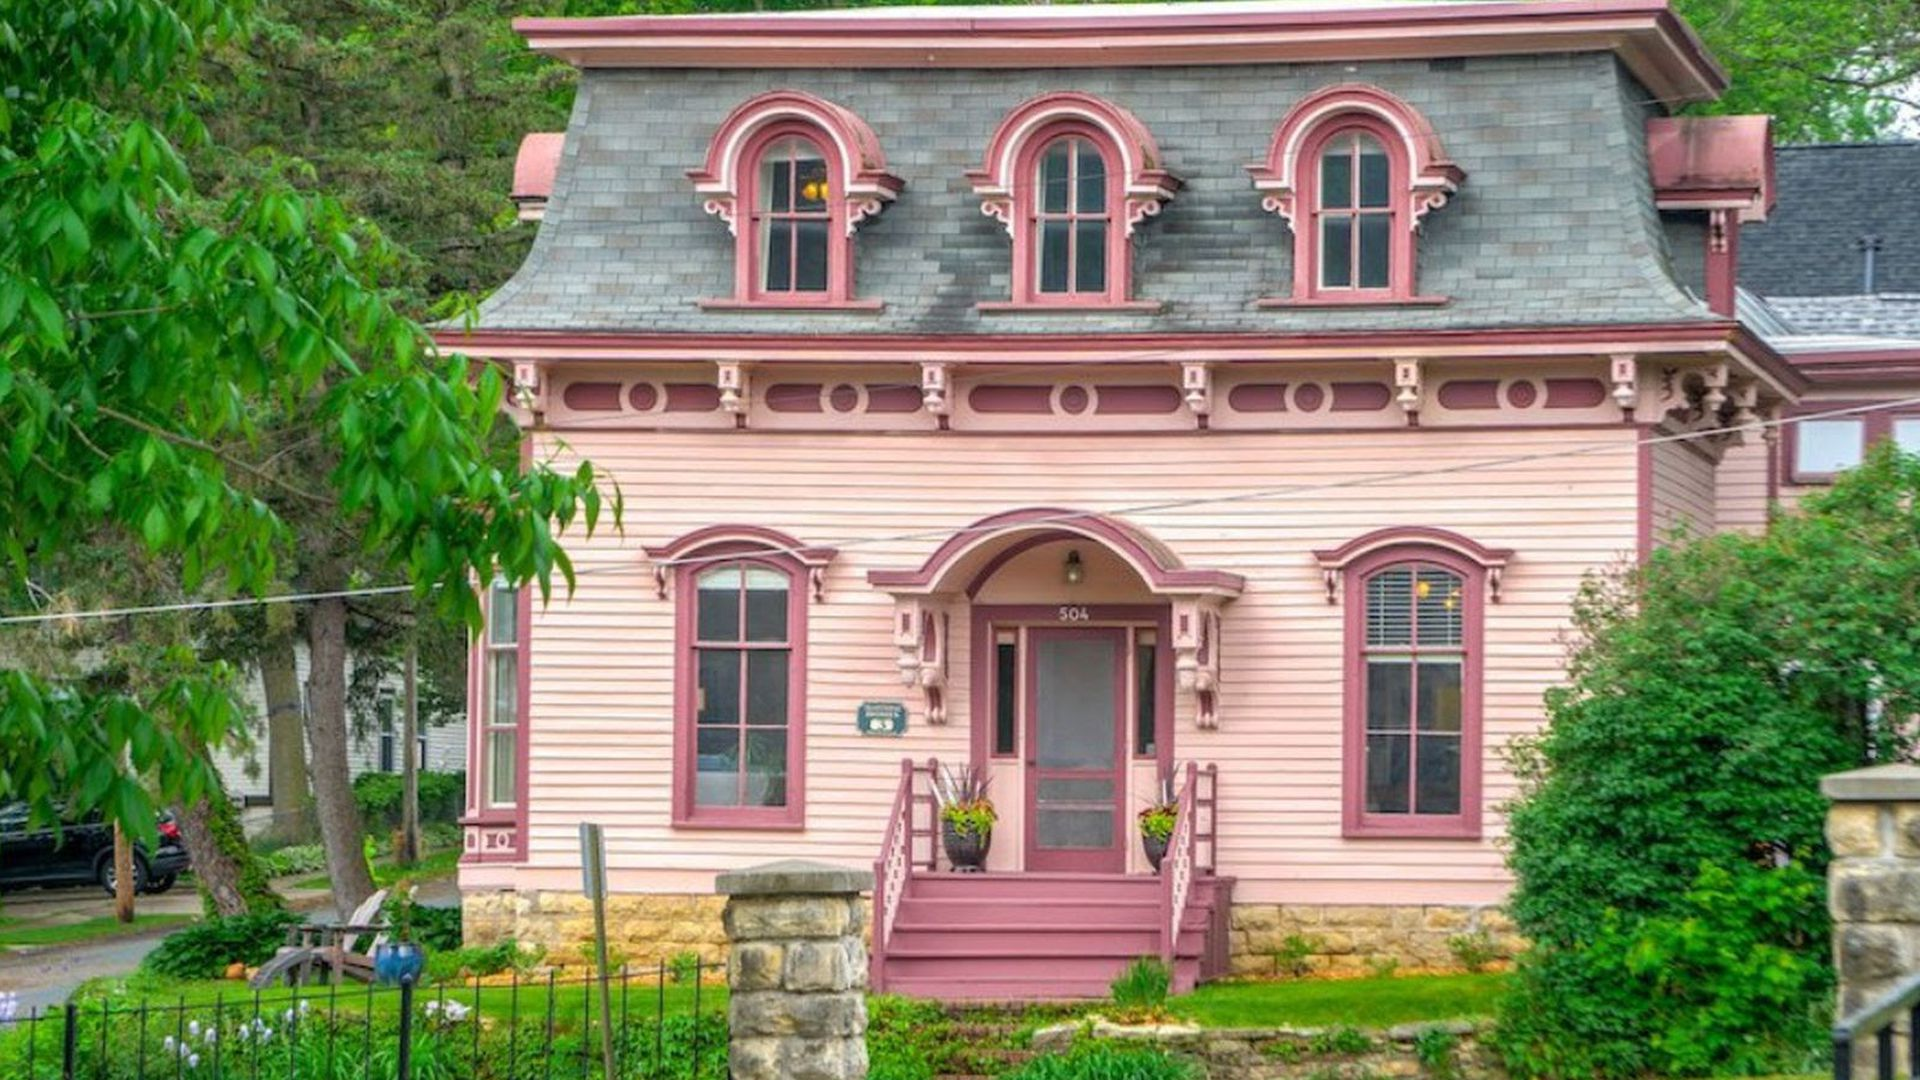 The exterior of the pink historic Ivory McKusick House in Stillwater, Minnesota.